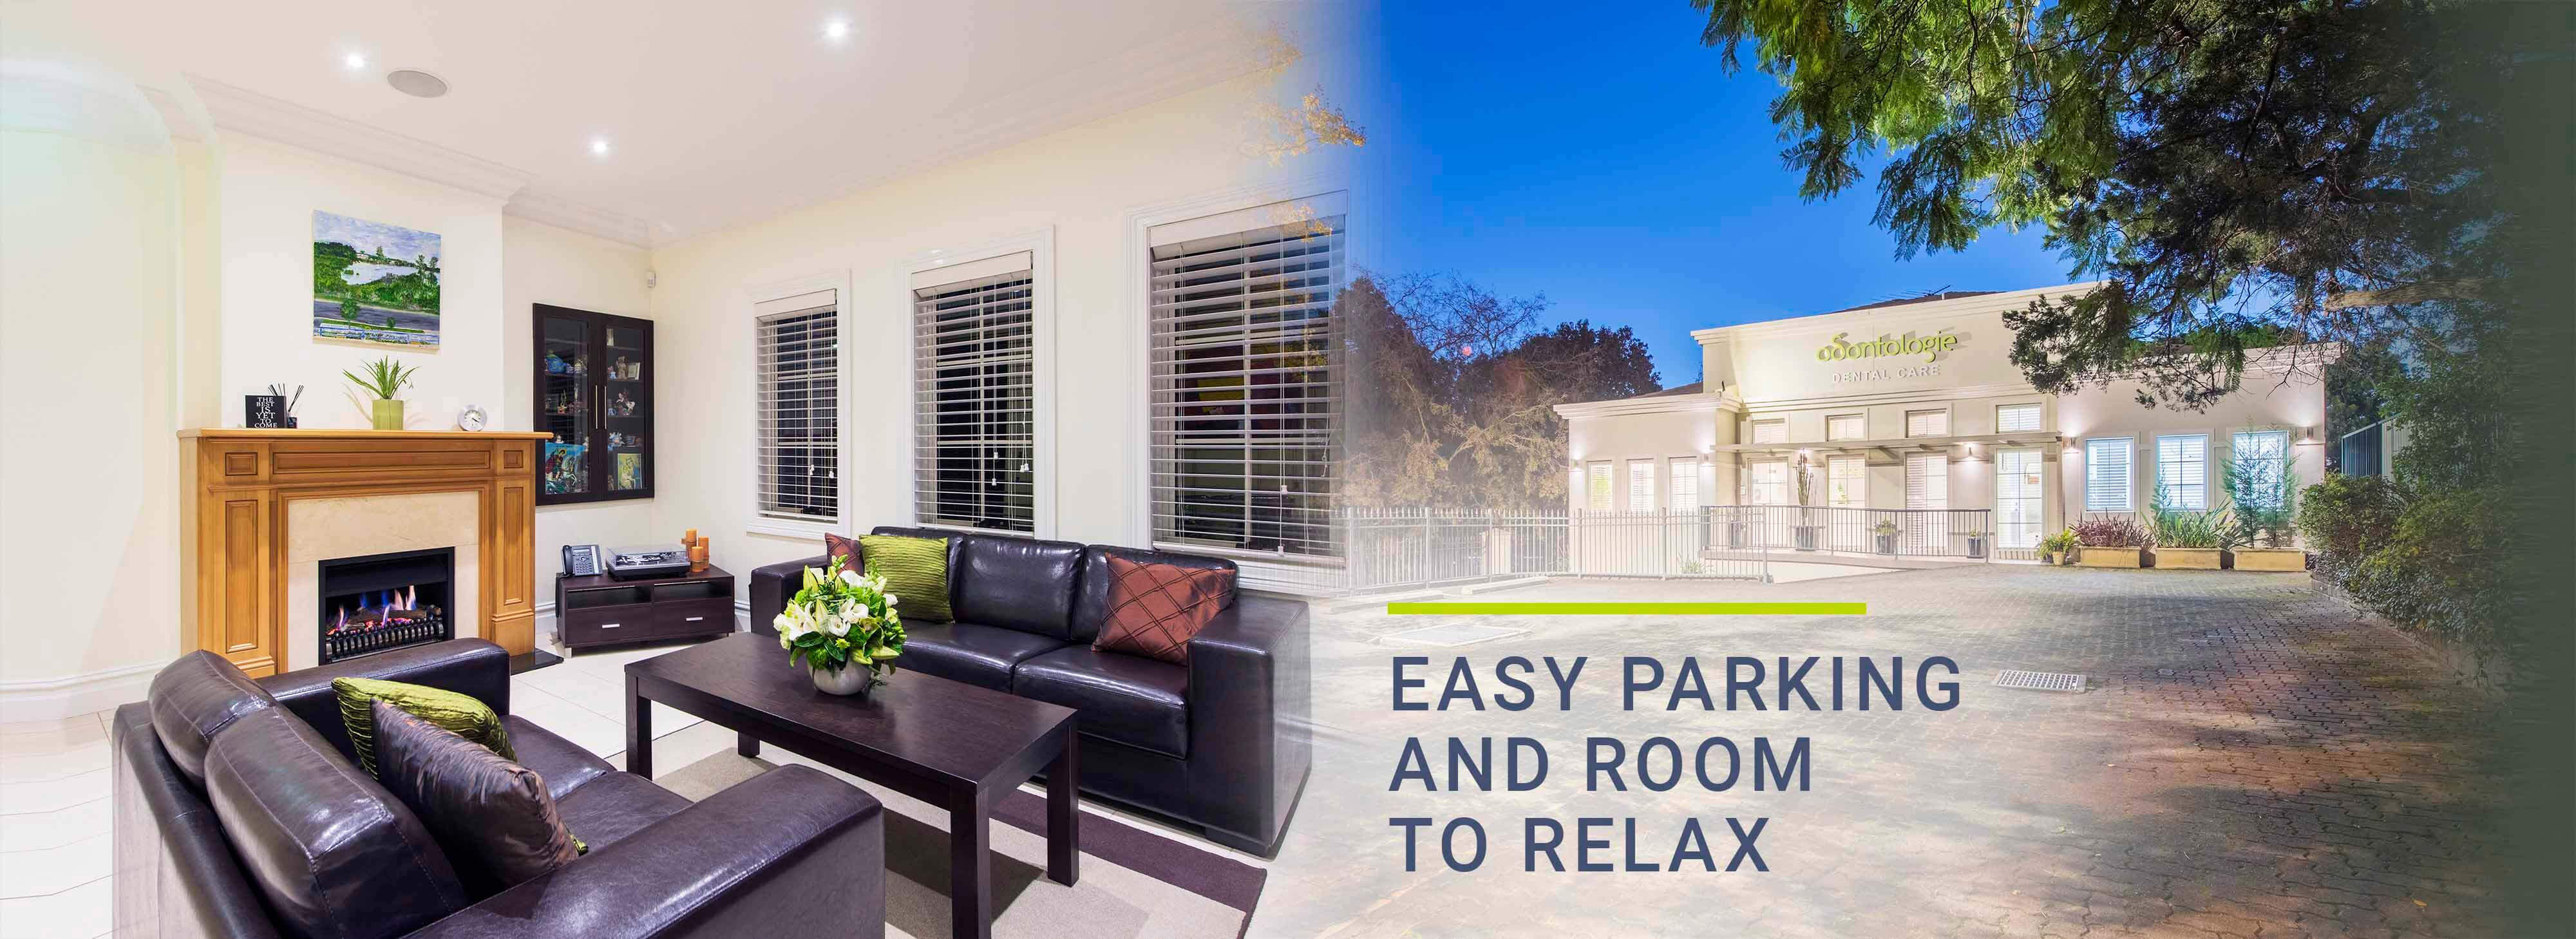 Easy Parking and Rooms